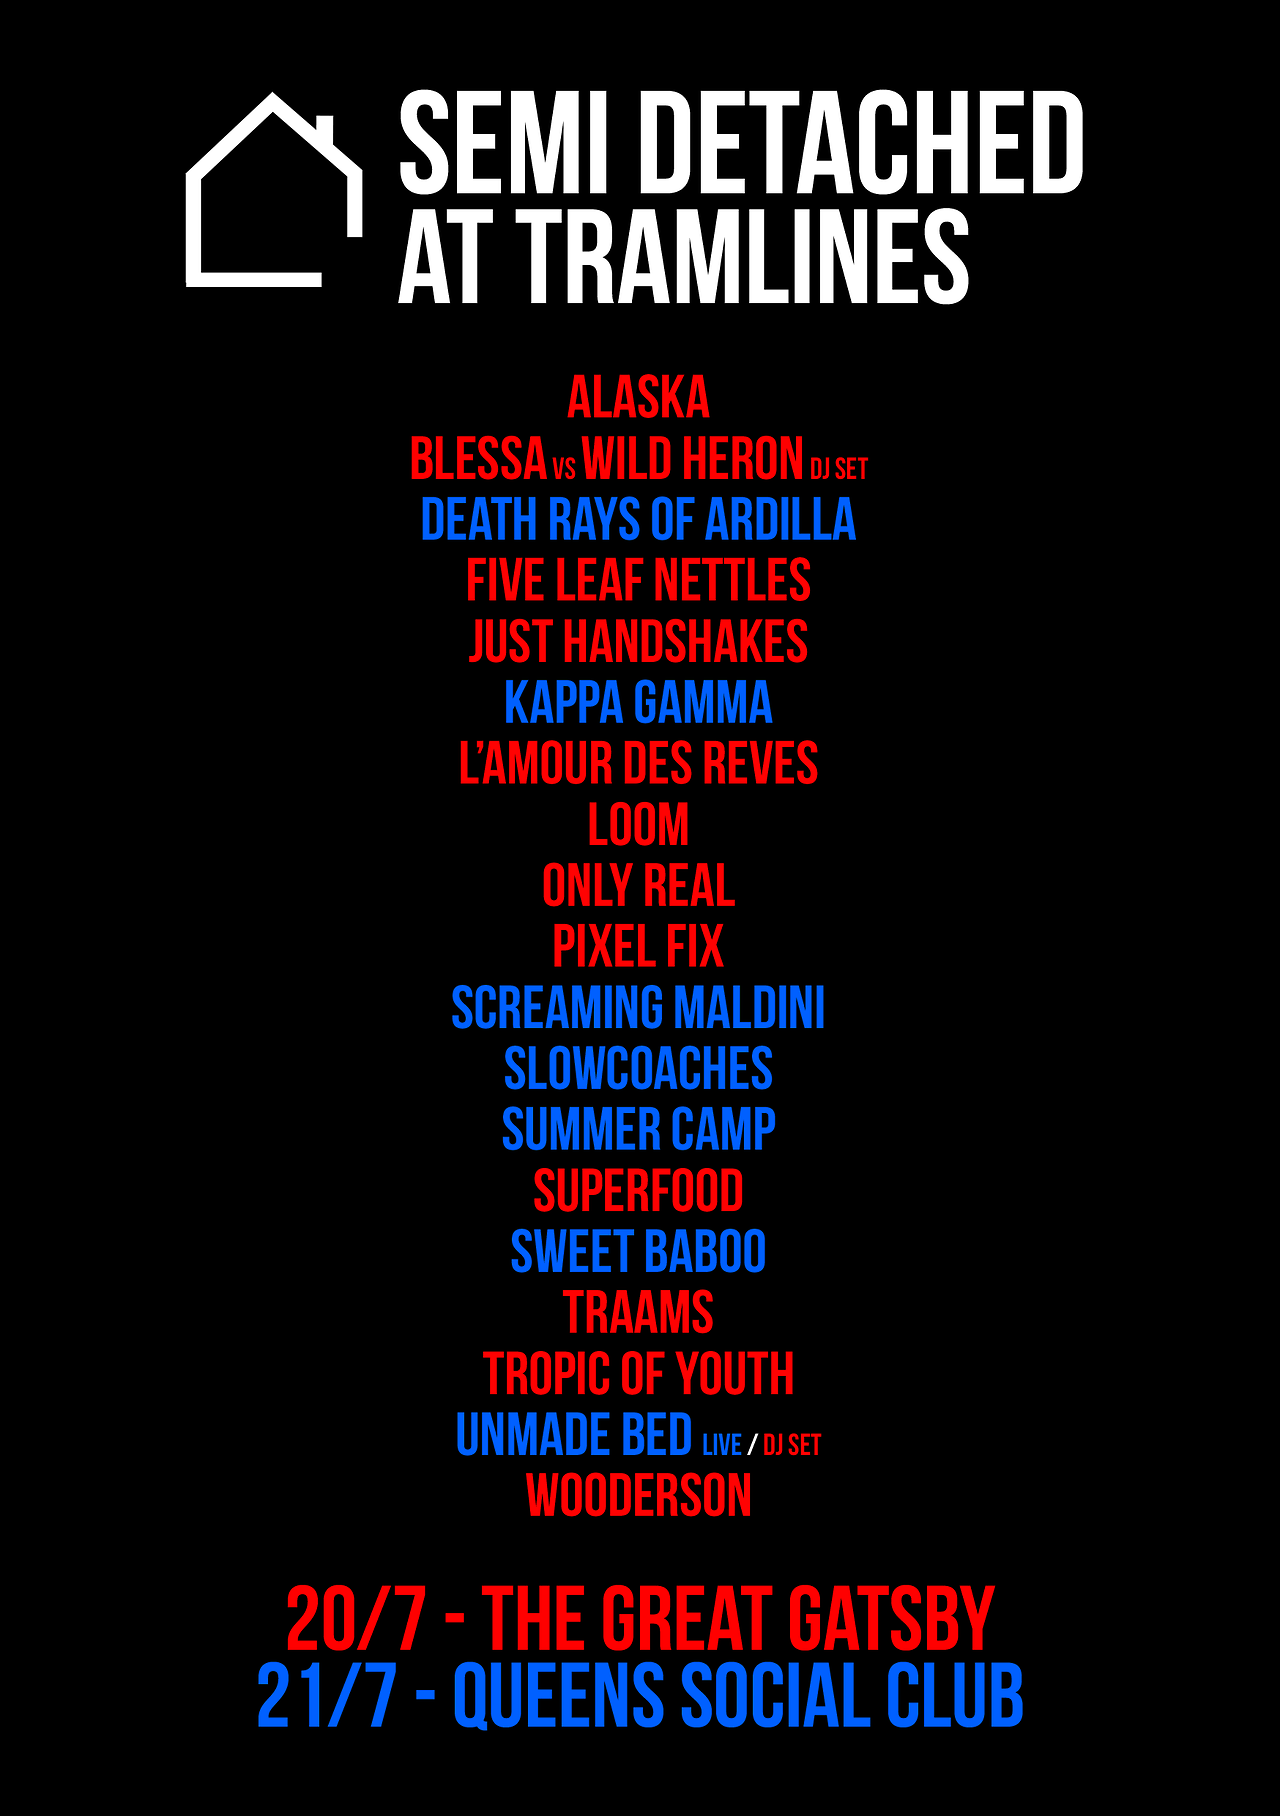 Tramlines is next weekend! We've a couple of secret special guests to announce for Saturday at the Great Gatsby, along with set times for both venues. Head here to keep informed.